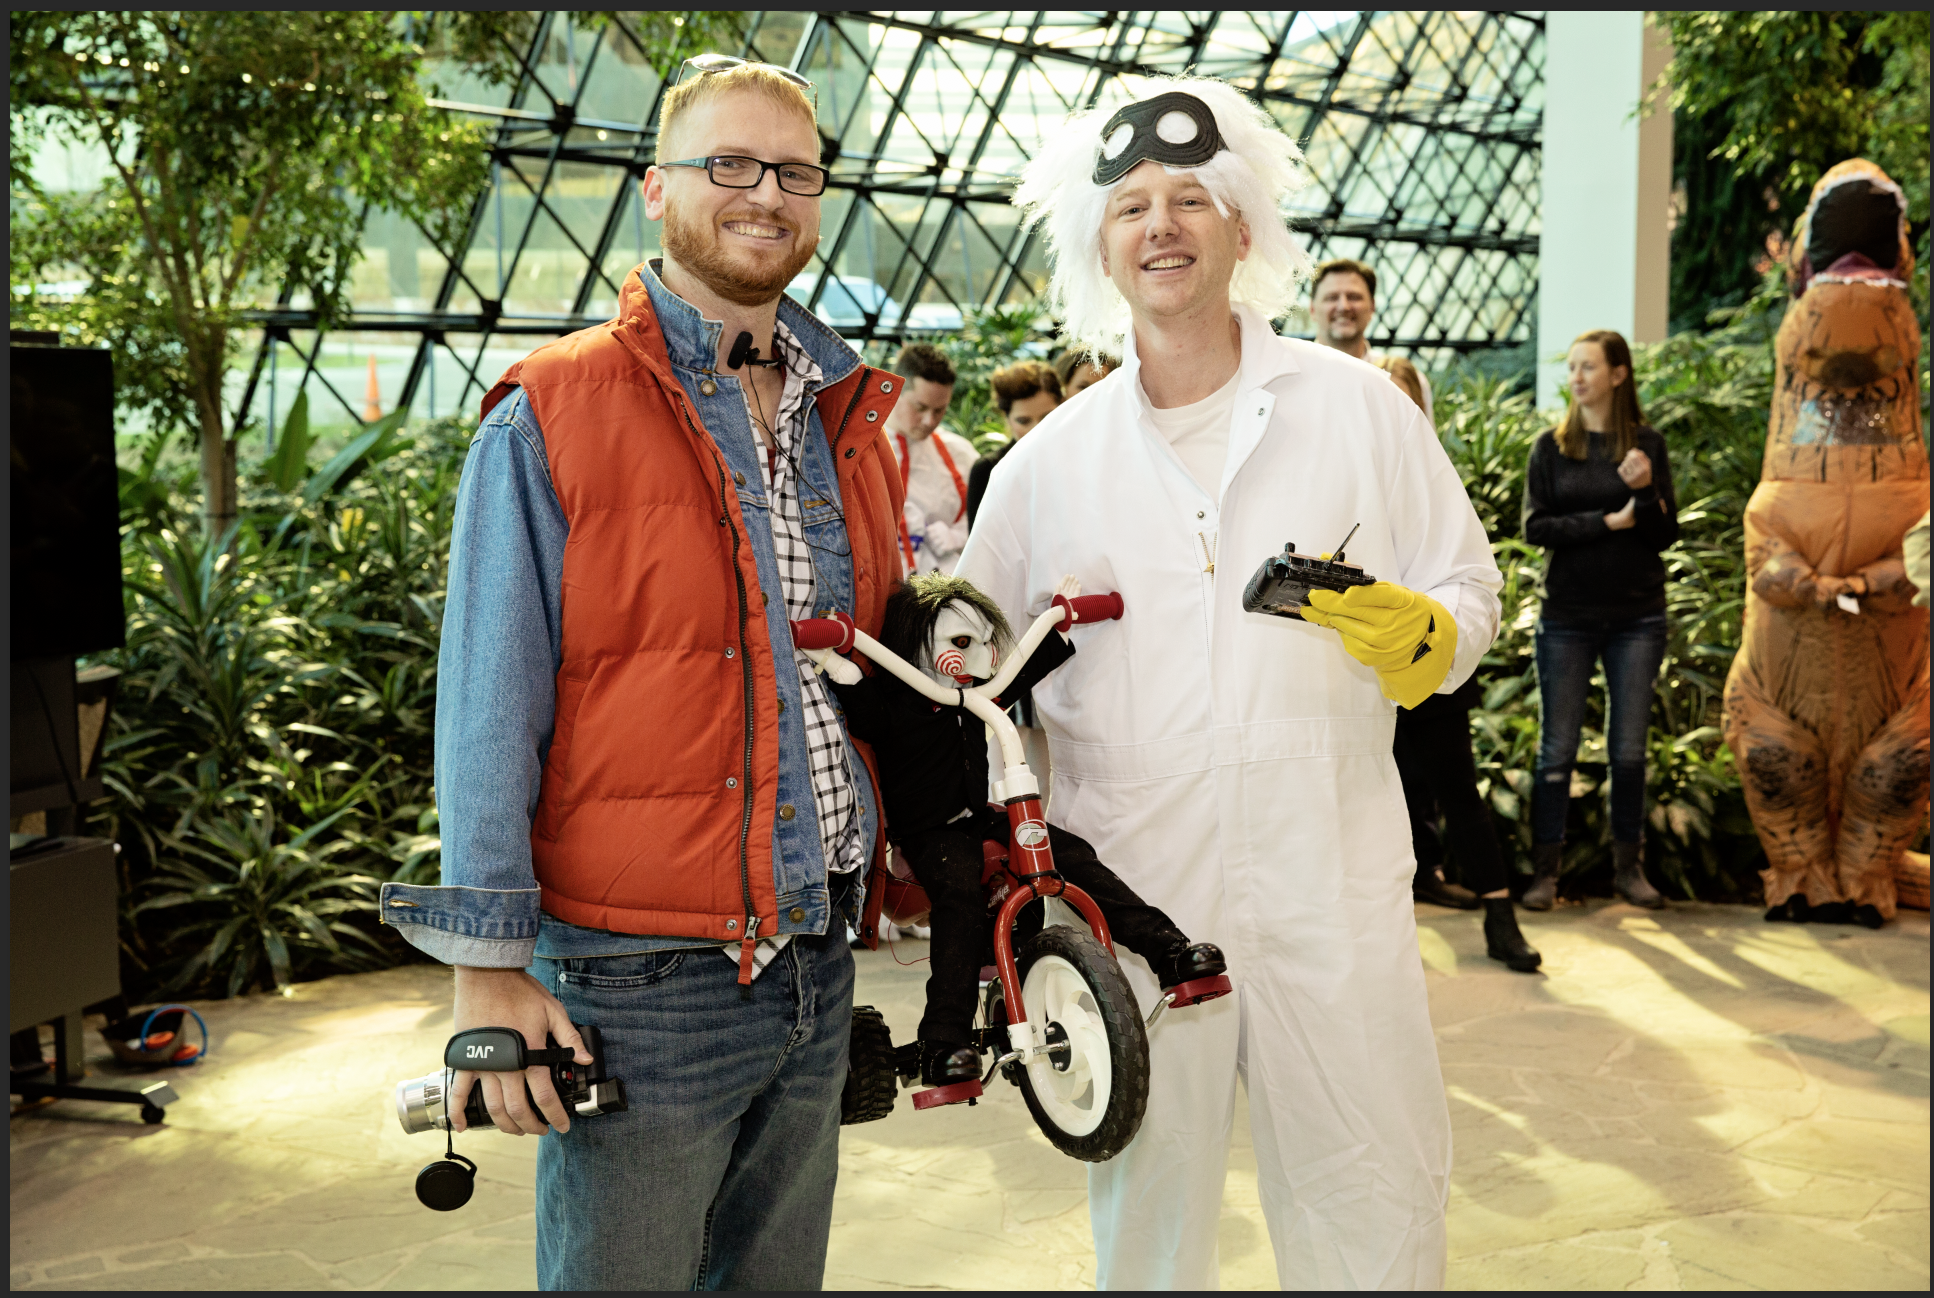 Dupont brothers back to the future halloween costume